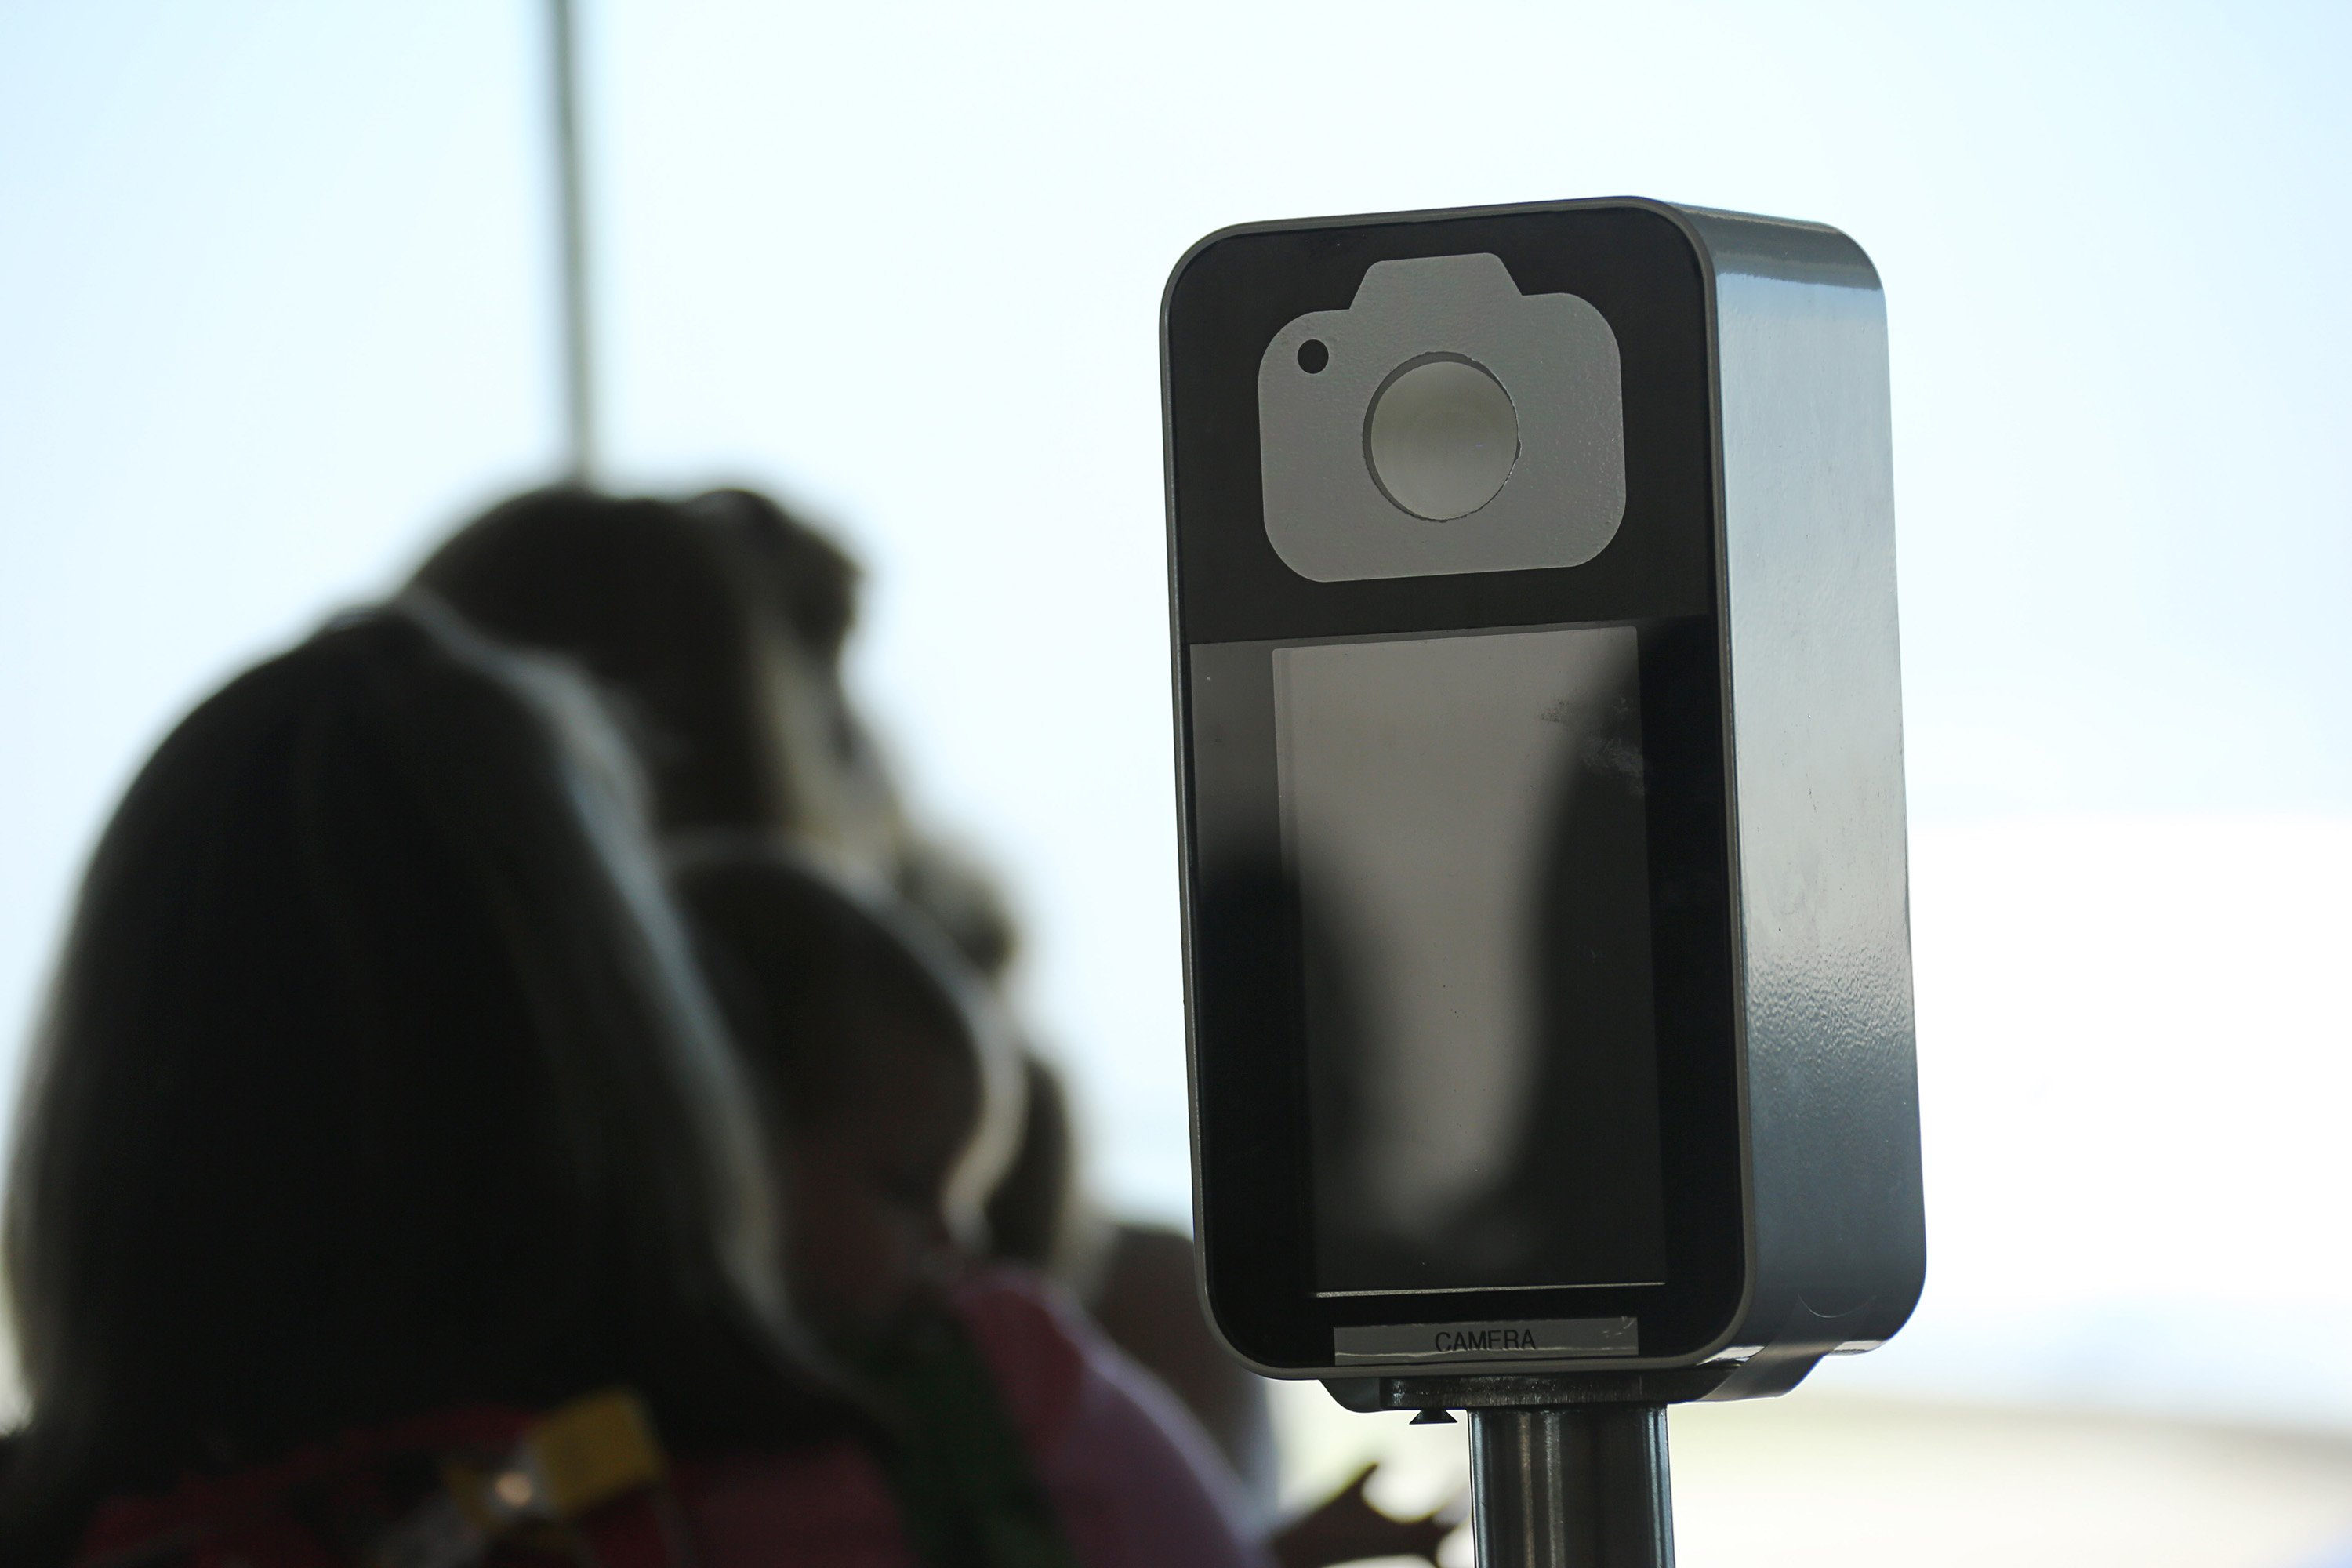 Delta using facial recognition cameras at LAX boarding gates